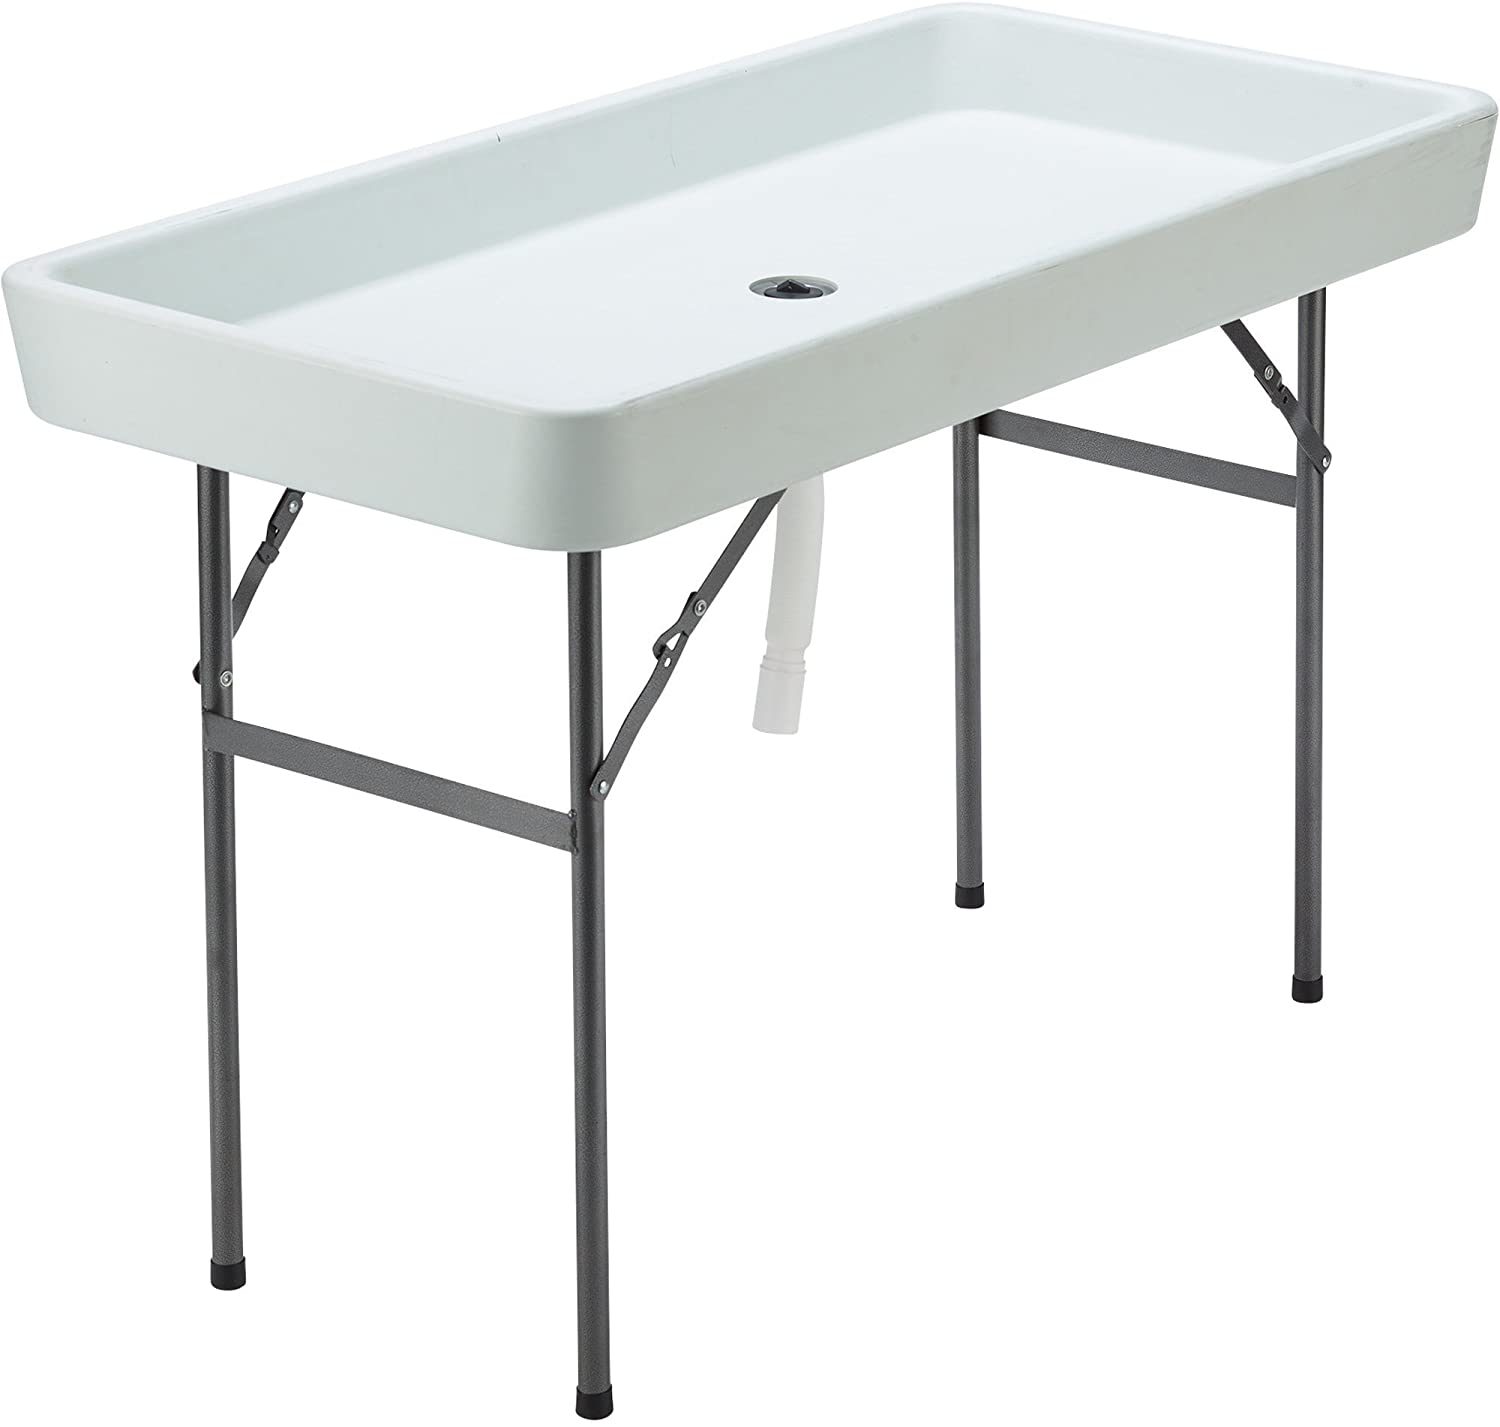 Ice Party Table Portable Tailgate Camping Table